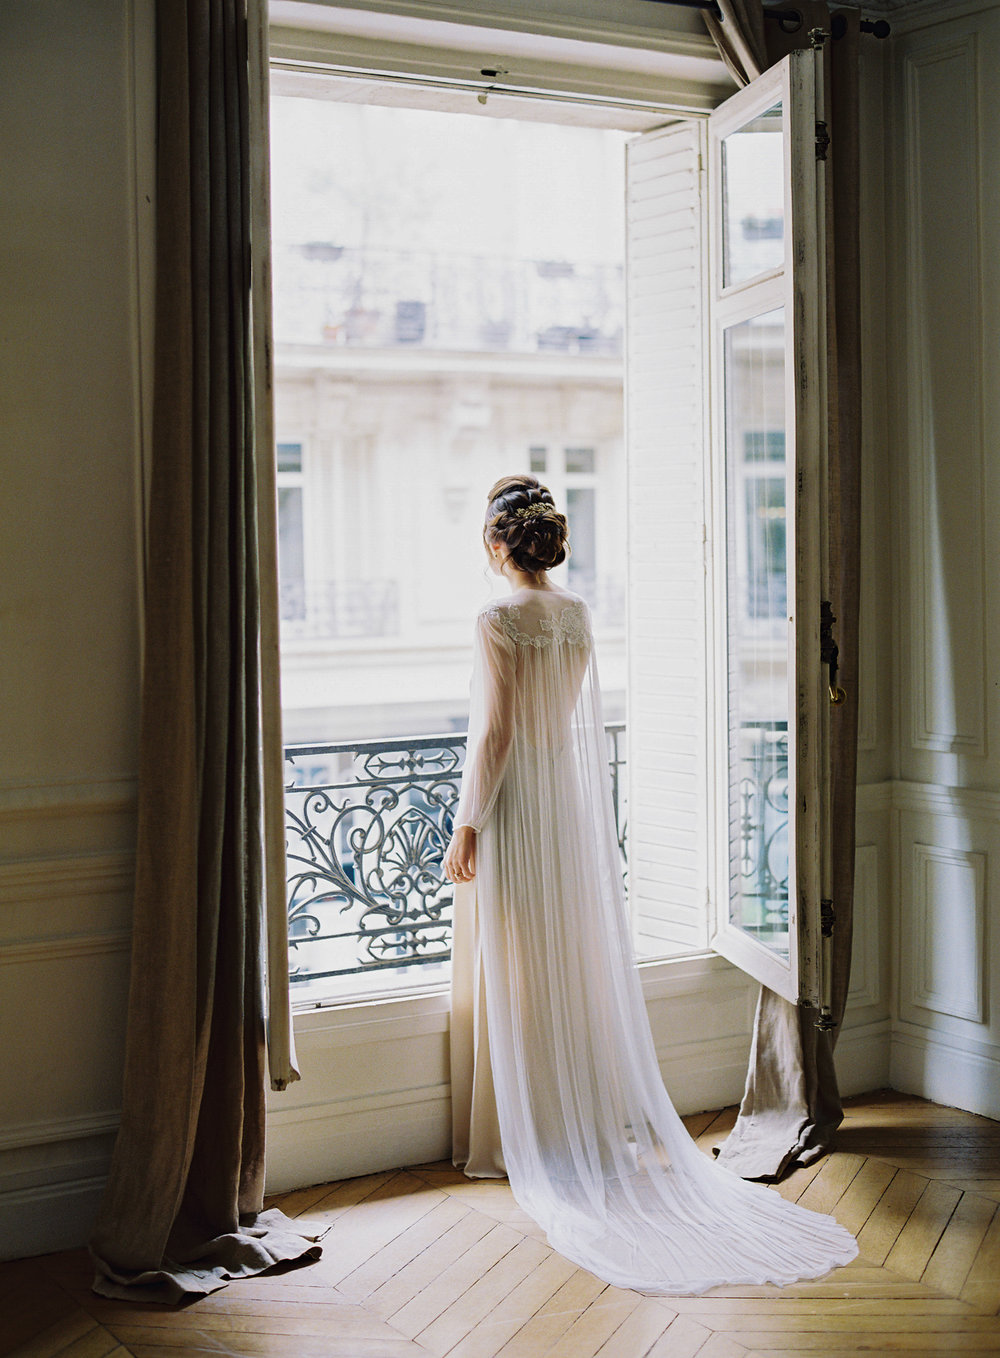 Paris-France-Film-Wedding-Carrie King Photographer-41.jpg